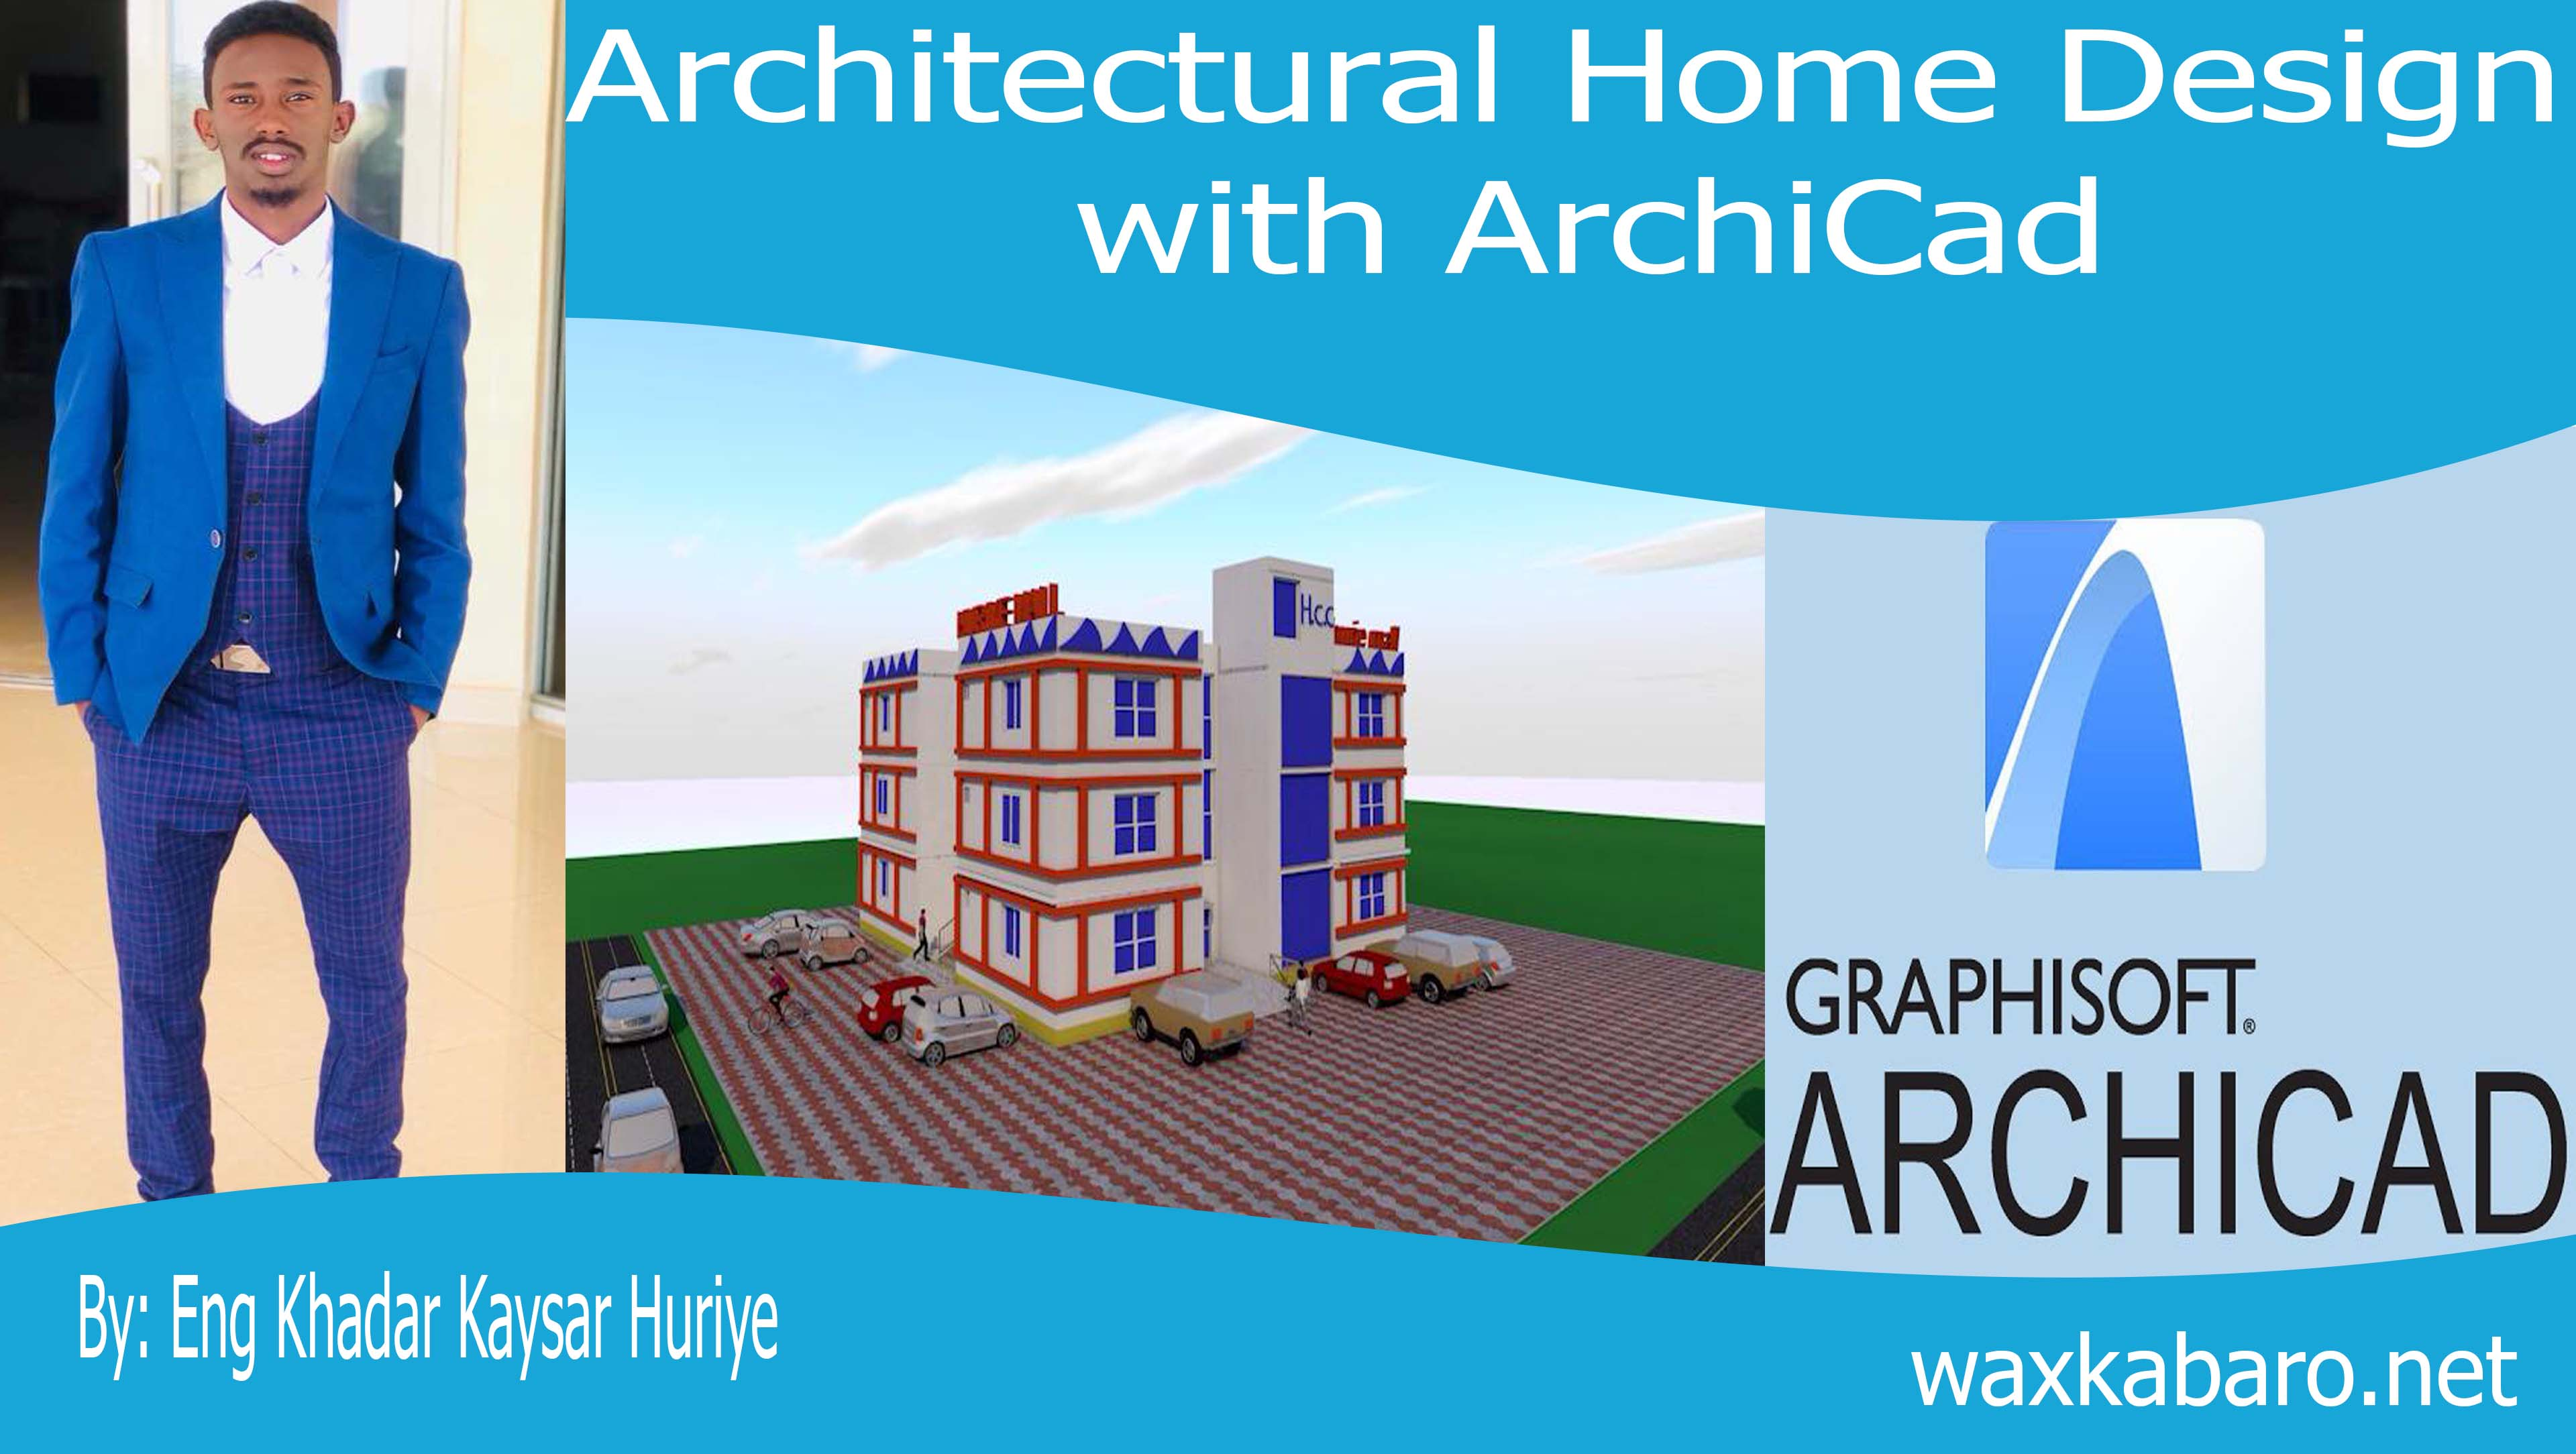 Architectural Home Design with Archicad